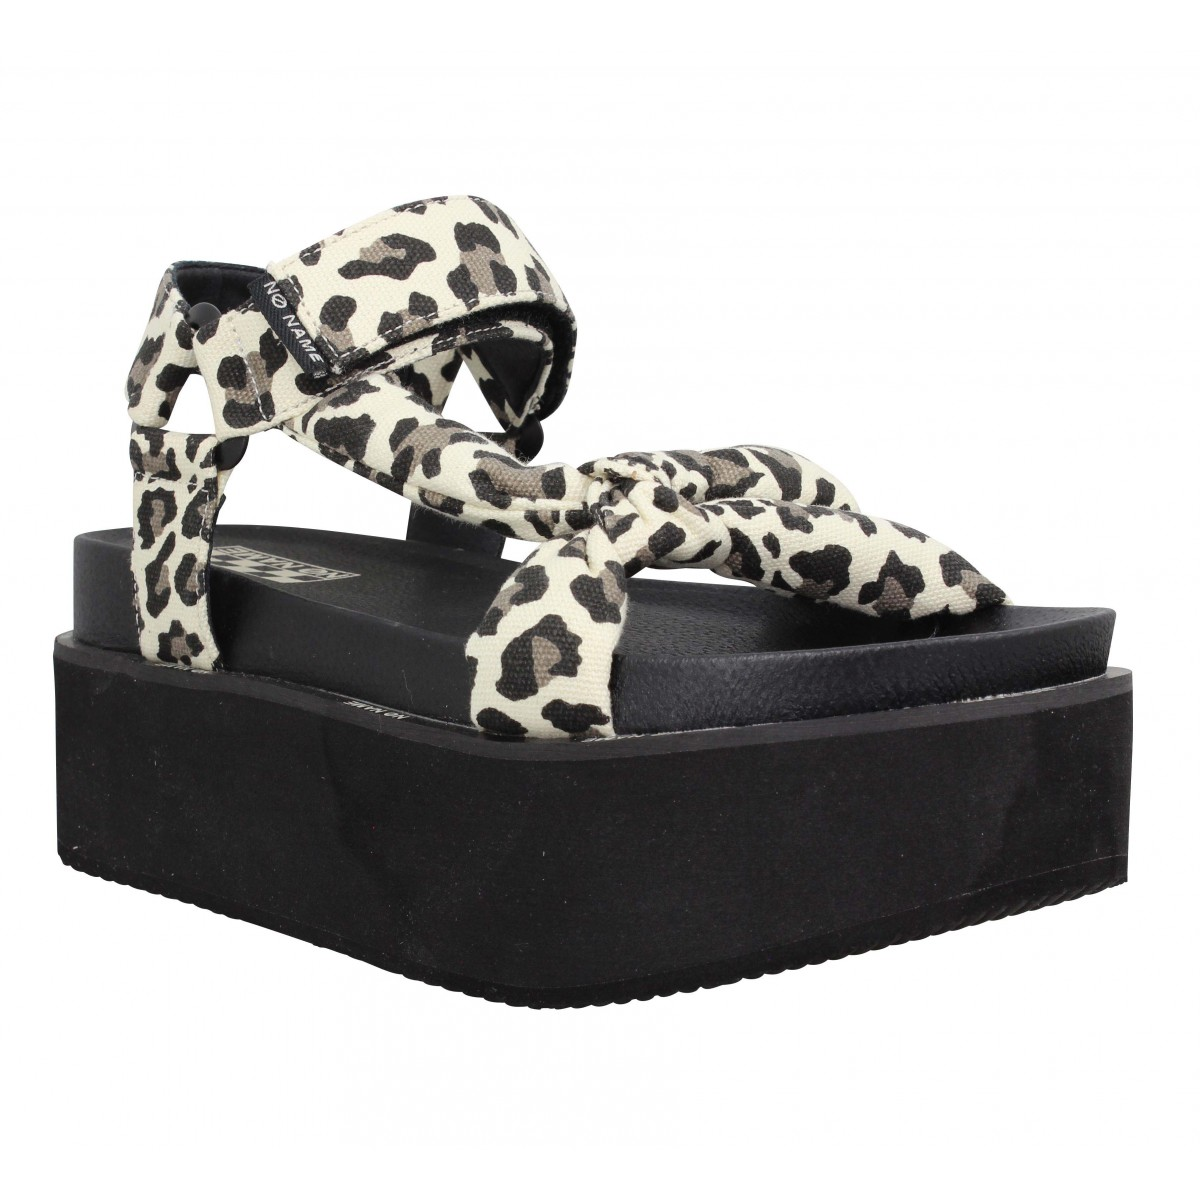 Nu-pieds NO NAME Poppy Sunset toile Femme Guepard